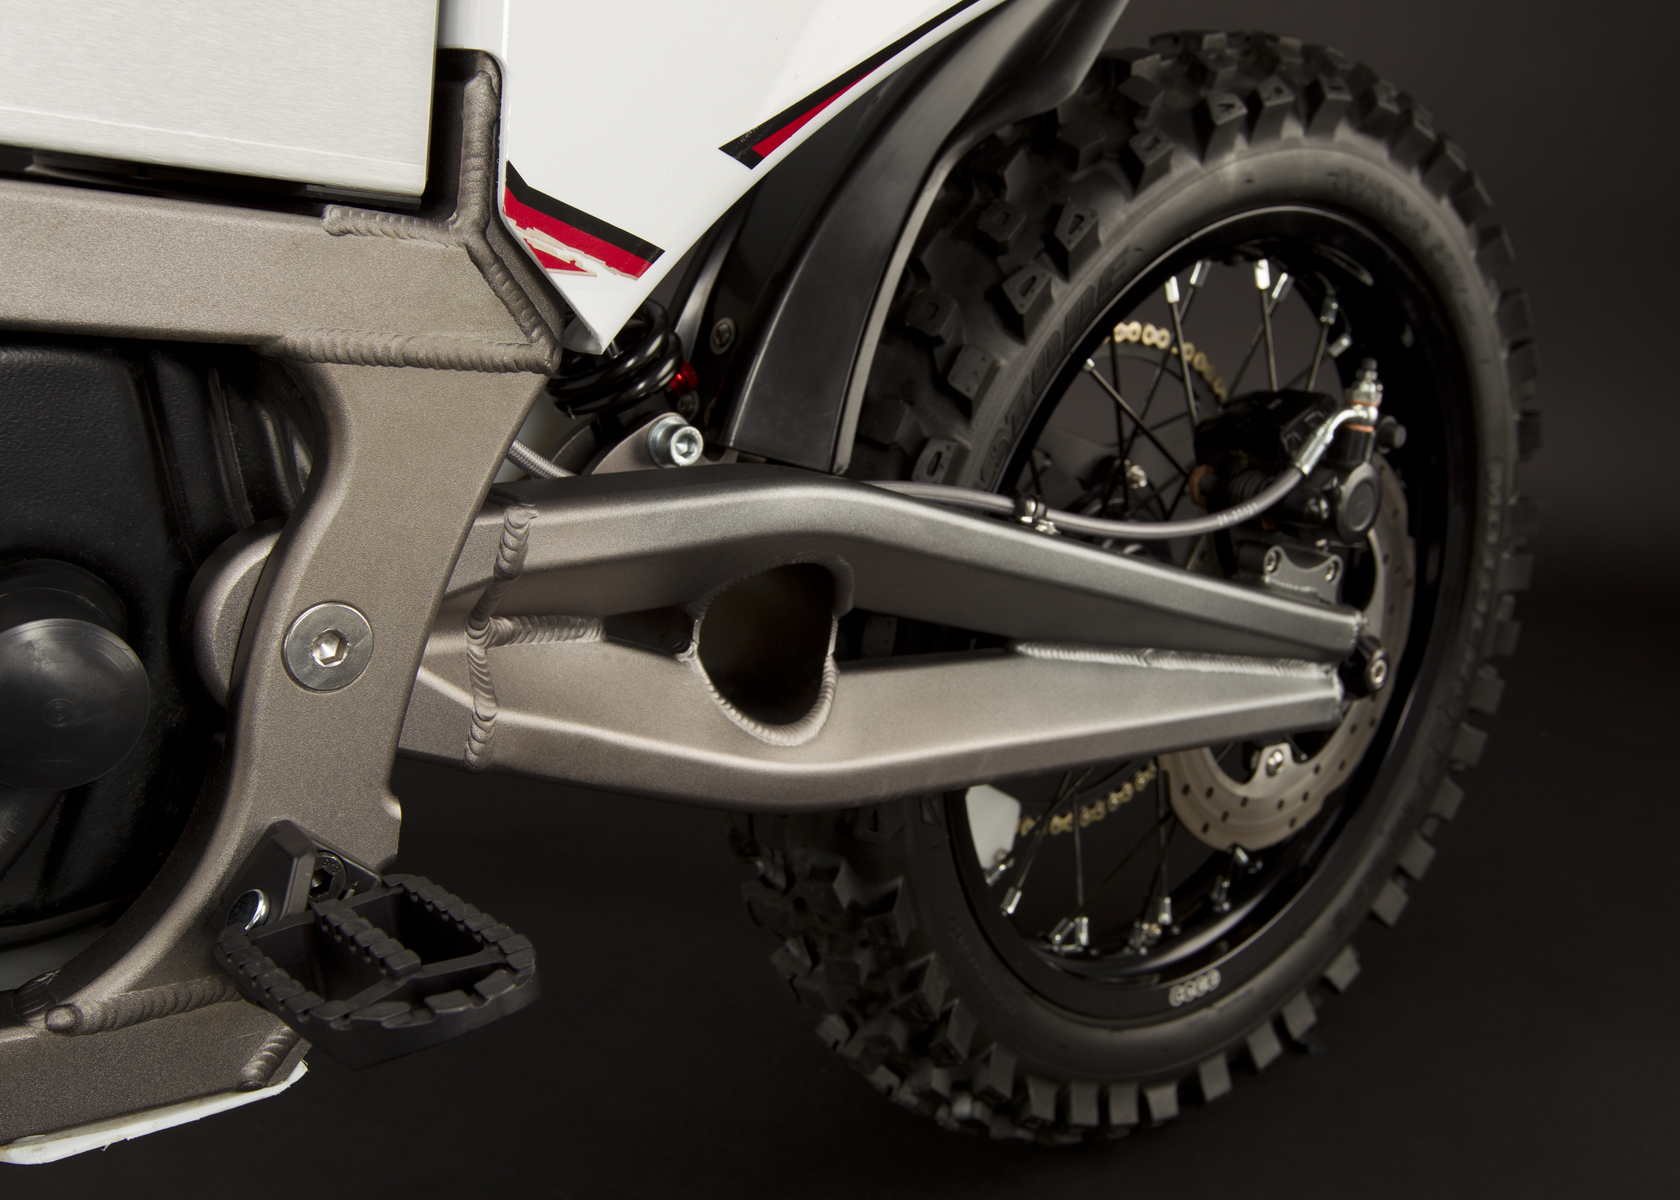 2011 Zero MX Electric Motorcycle: Rear tire / Rear shock